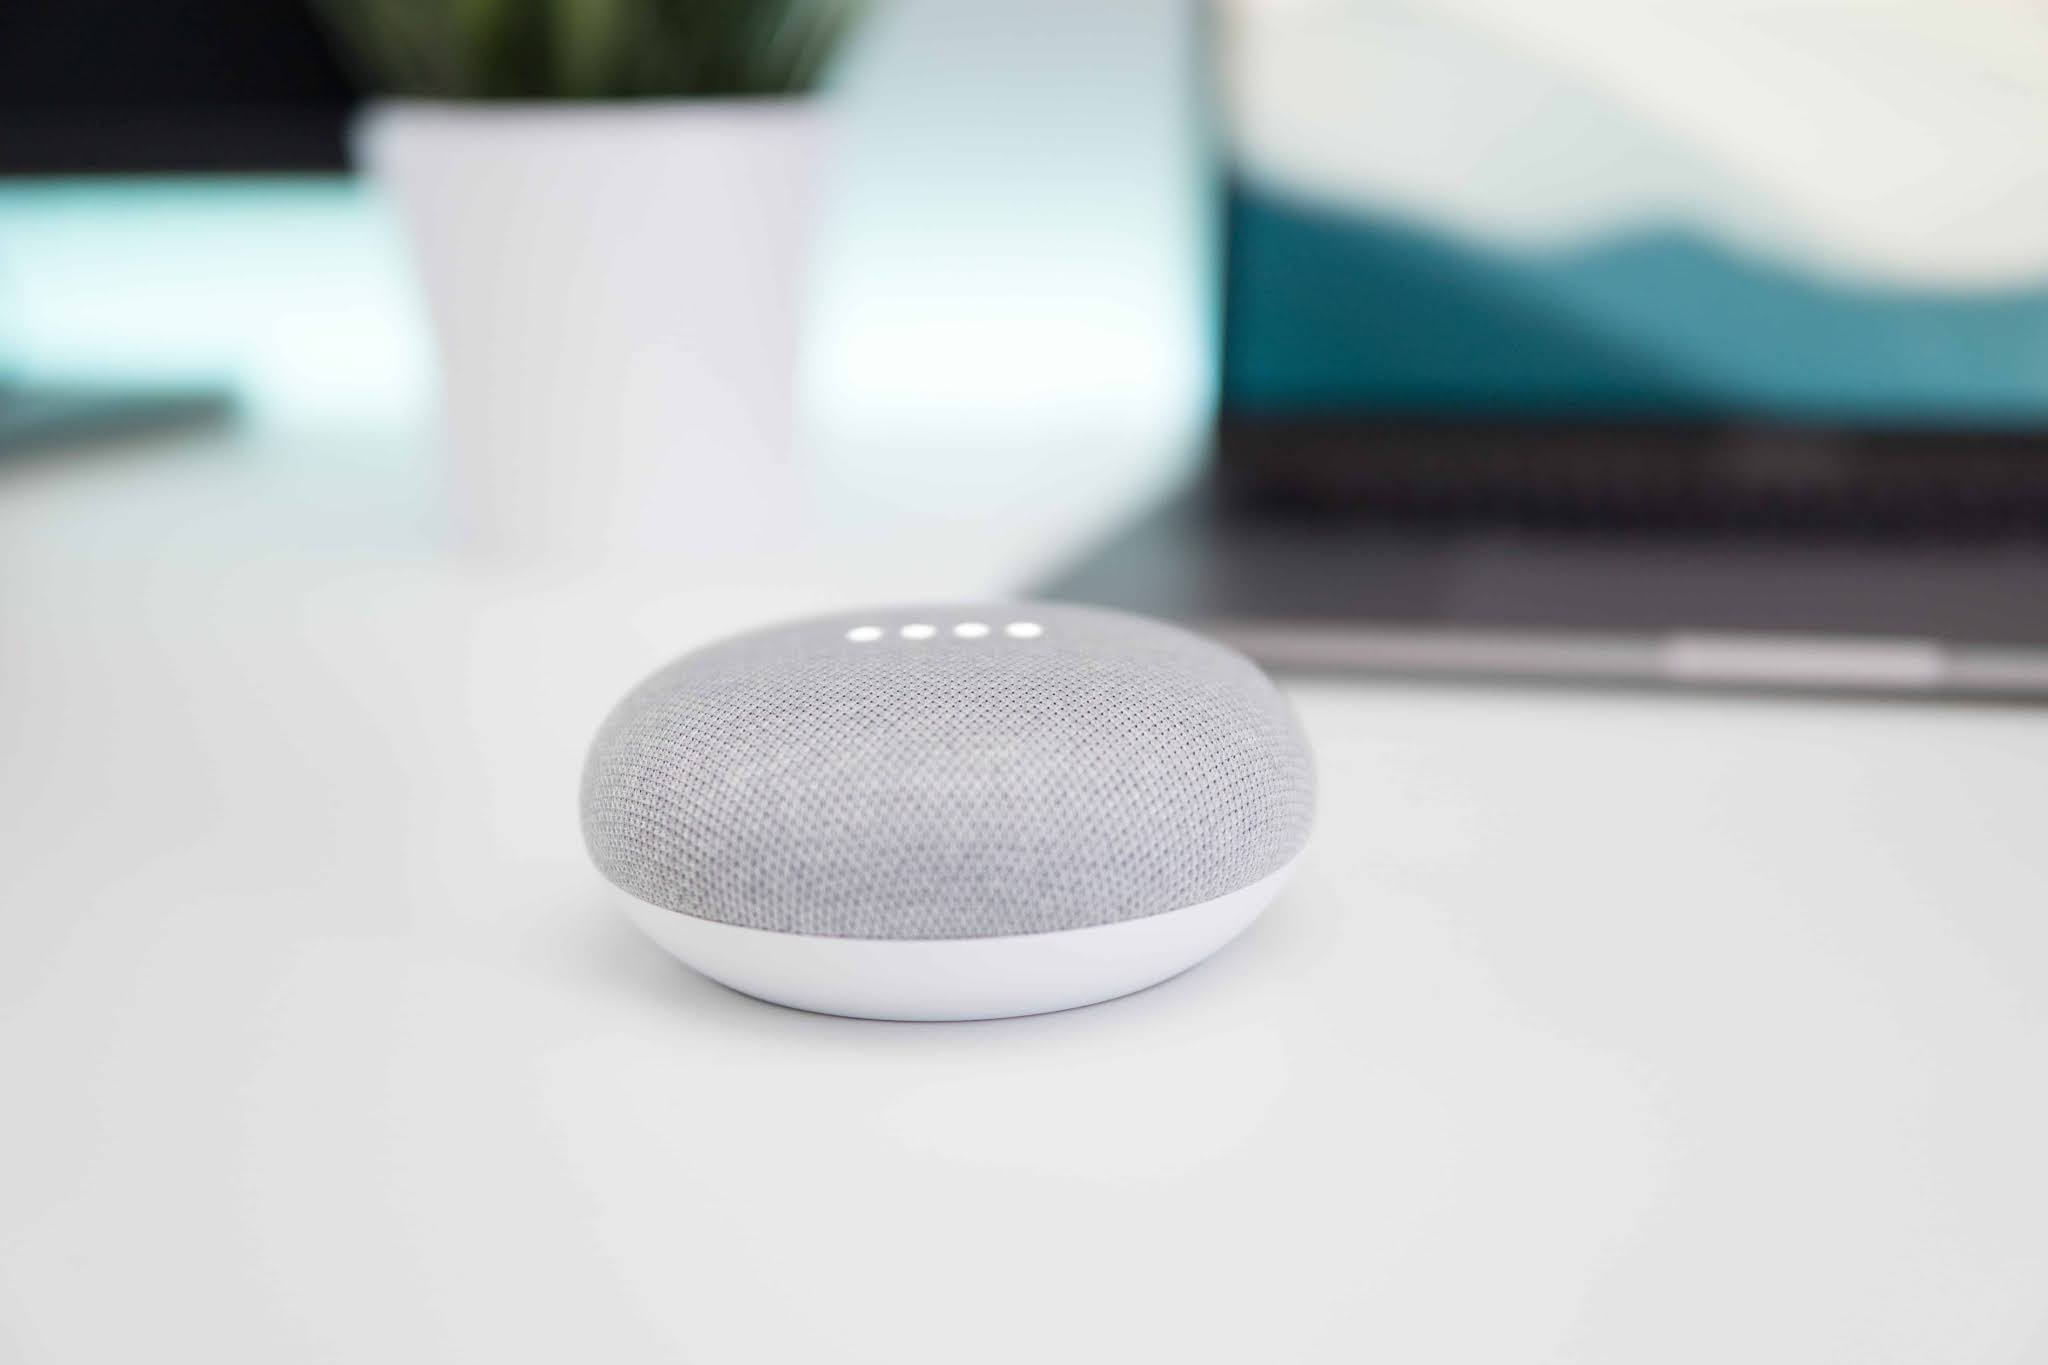 Google smart speakers for home automation